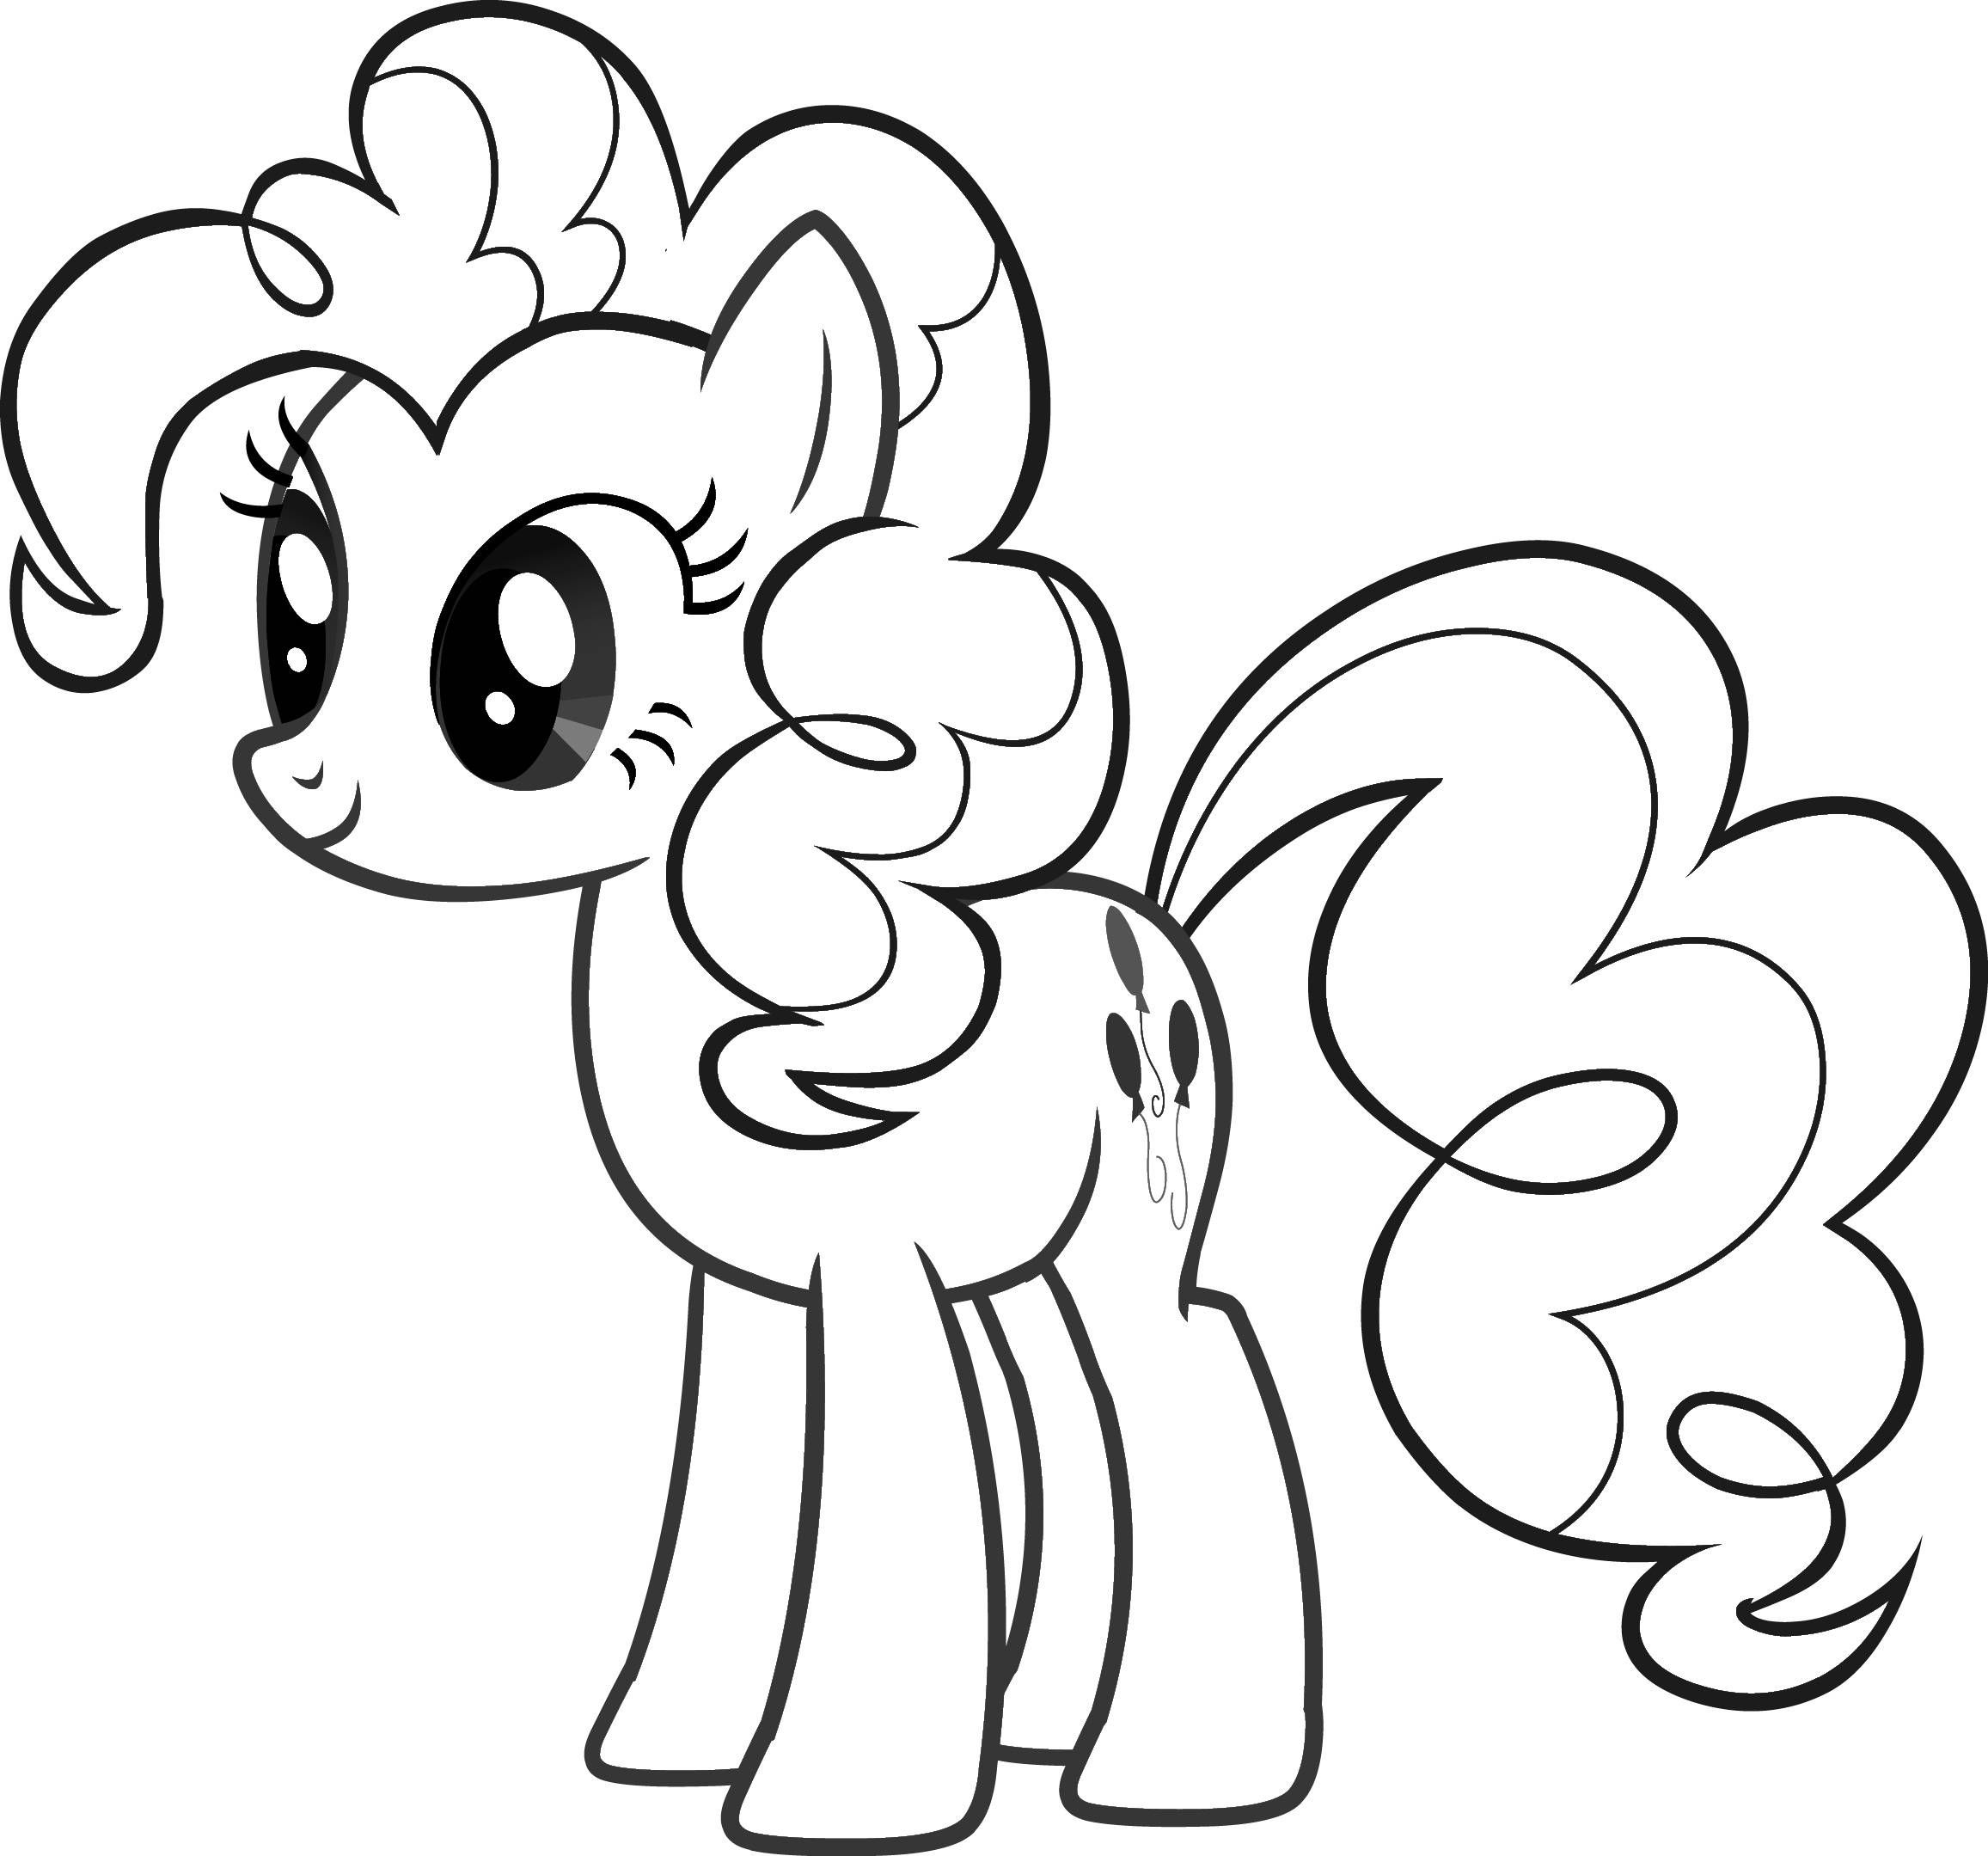 my little pony coloring pictures - Vatoz.atozdevelopment.co